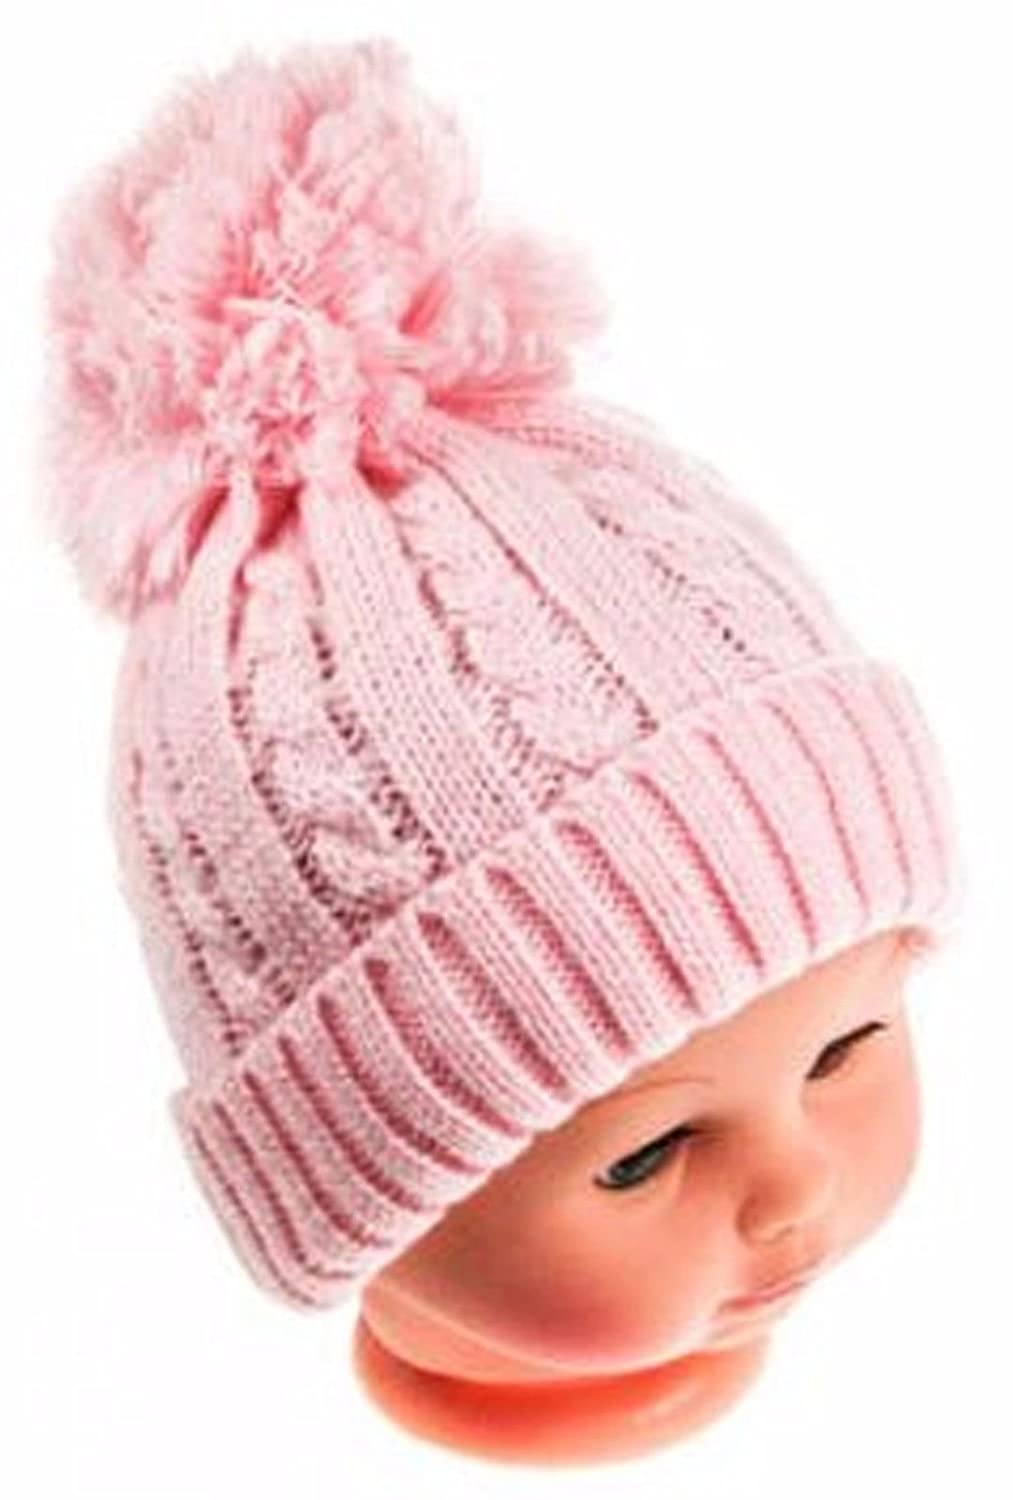 Baby Boys Girls Knitted Pom Pom Soft Hat NB-6, 6-12, 0-12 & 12-24 Months H470